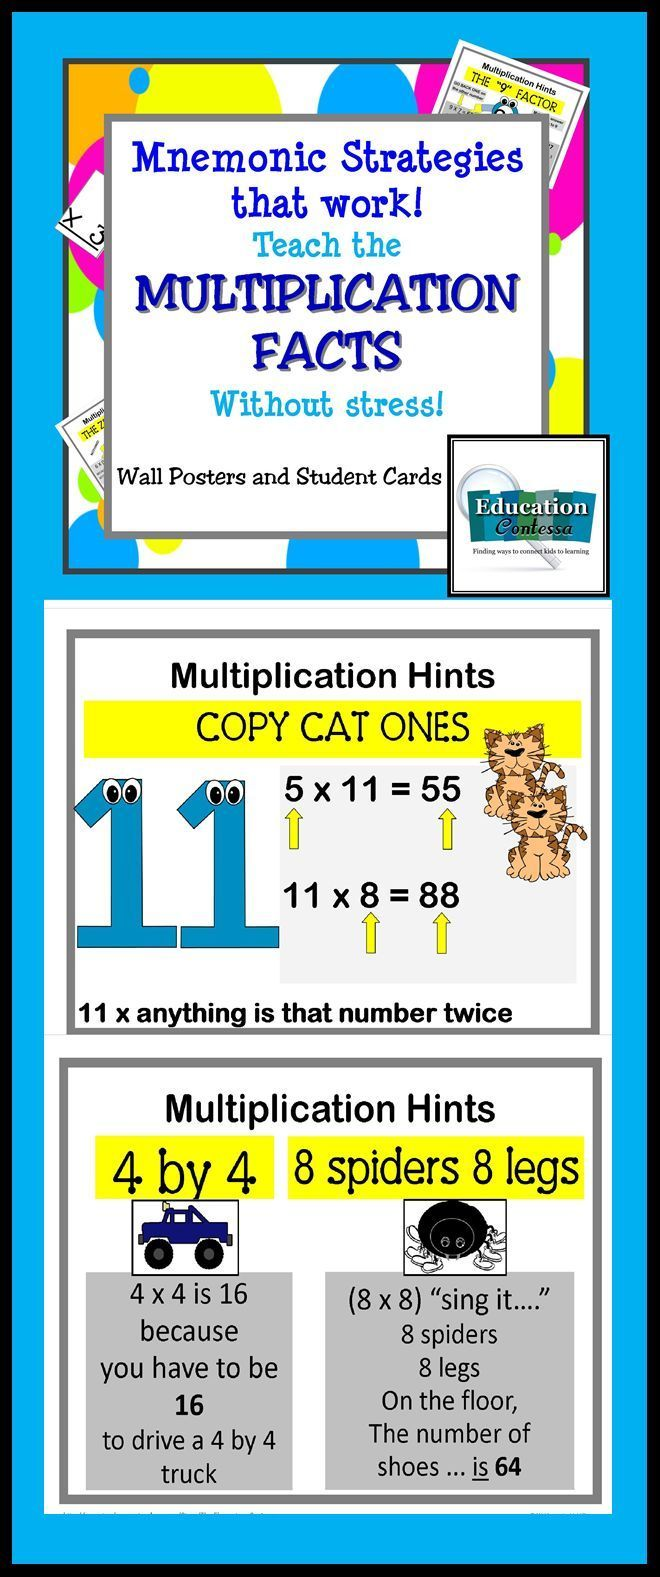 Best way to learn multiplication table gallery periodic table images best way to learn multiplication table gallery periodic table images multiplication fact practice worksheet grade 3 gamestrikefo Image collections